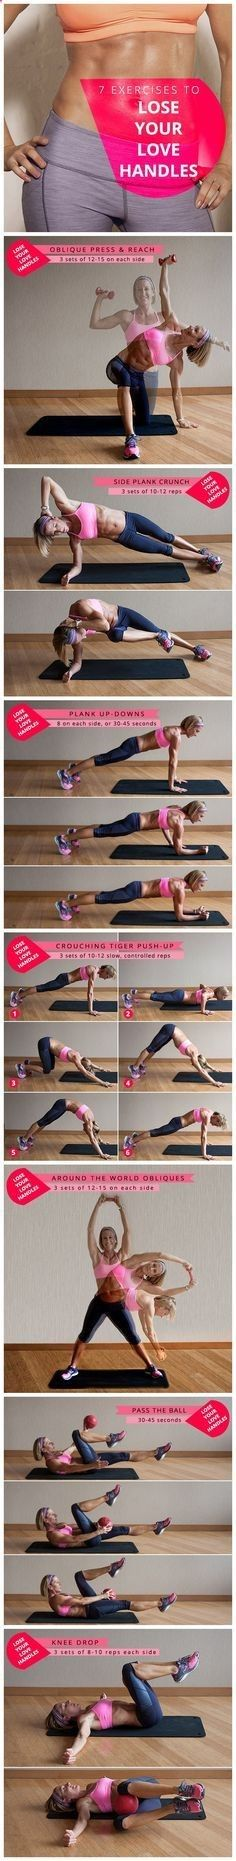 See more here ► www.youtube.com/... Tags: best healthy way to lose weight, what is the best and quickest way to lose weight, the best way to lose baby weight - Love Handles Workout | Fitness #exercise #diet #workout #fitness #health